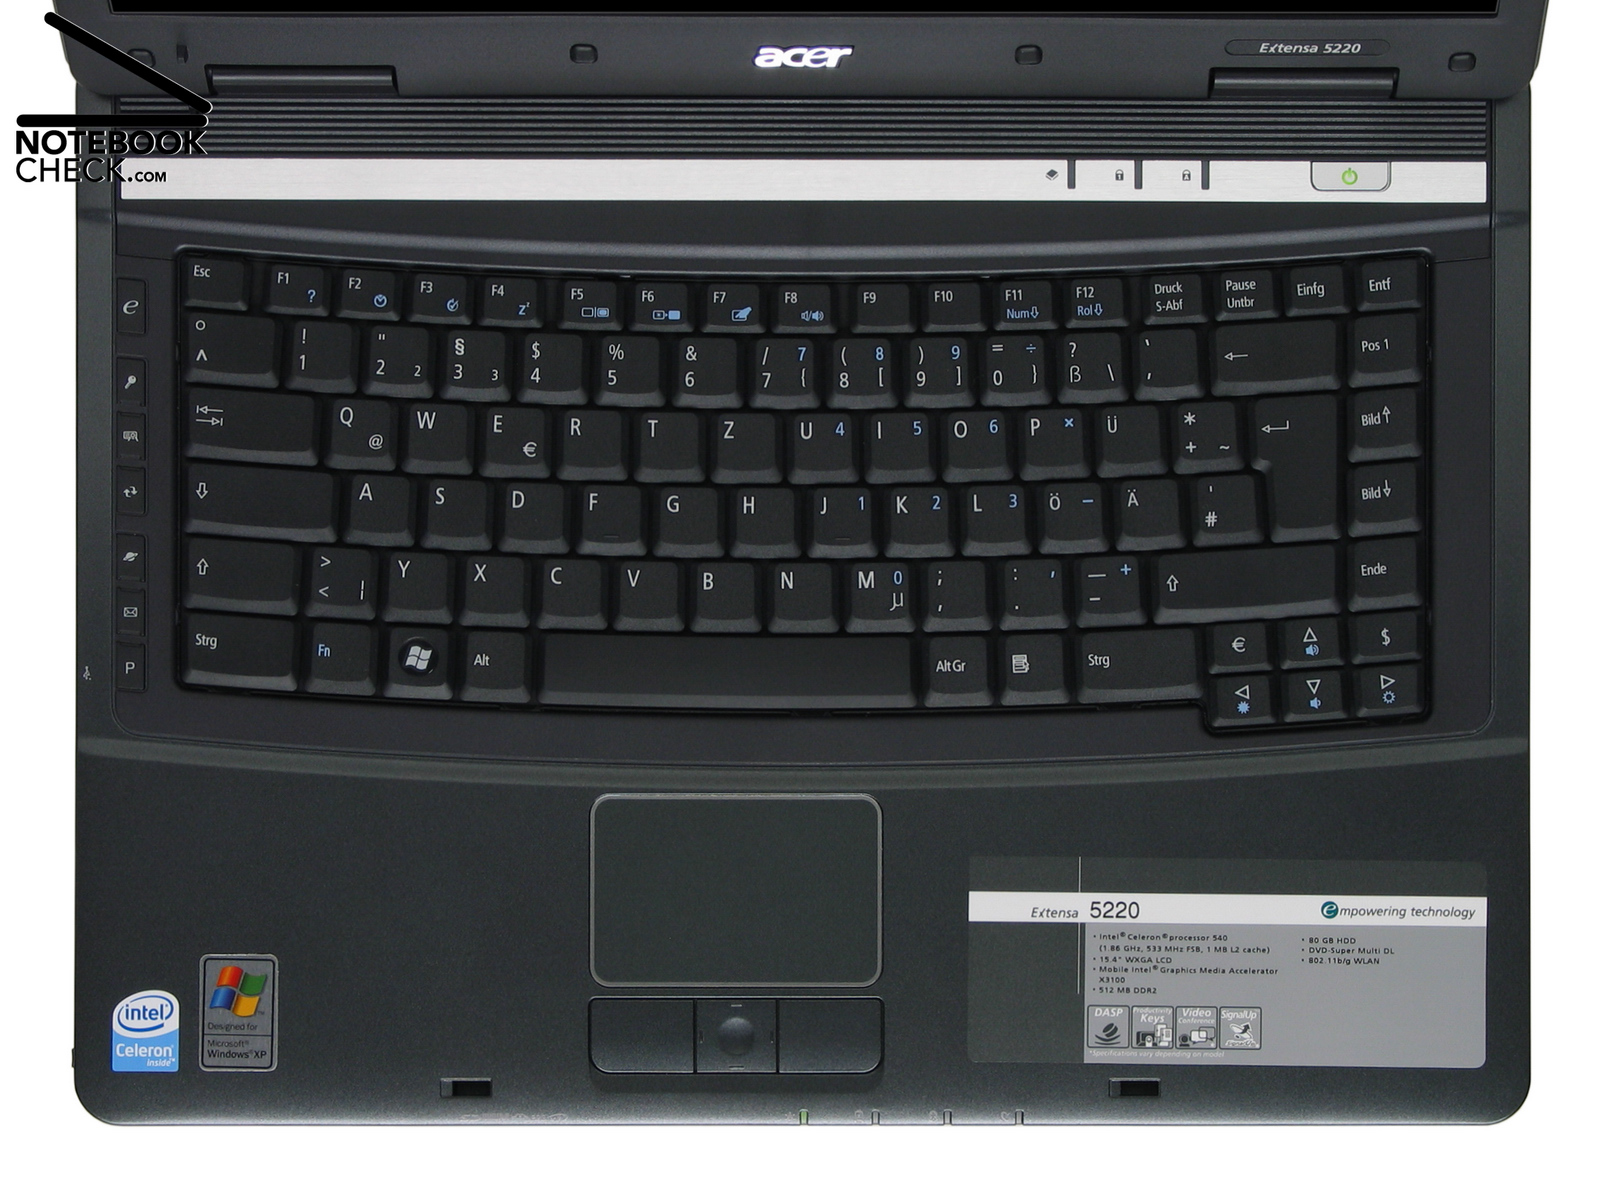 Download Drivers: Acer Extensa 5220 NVIDIA Display